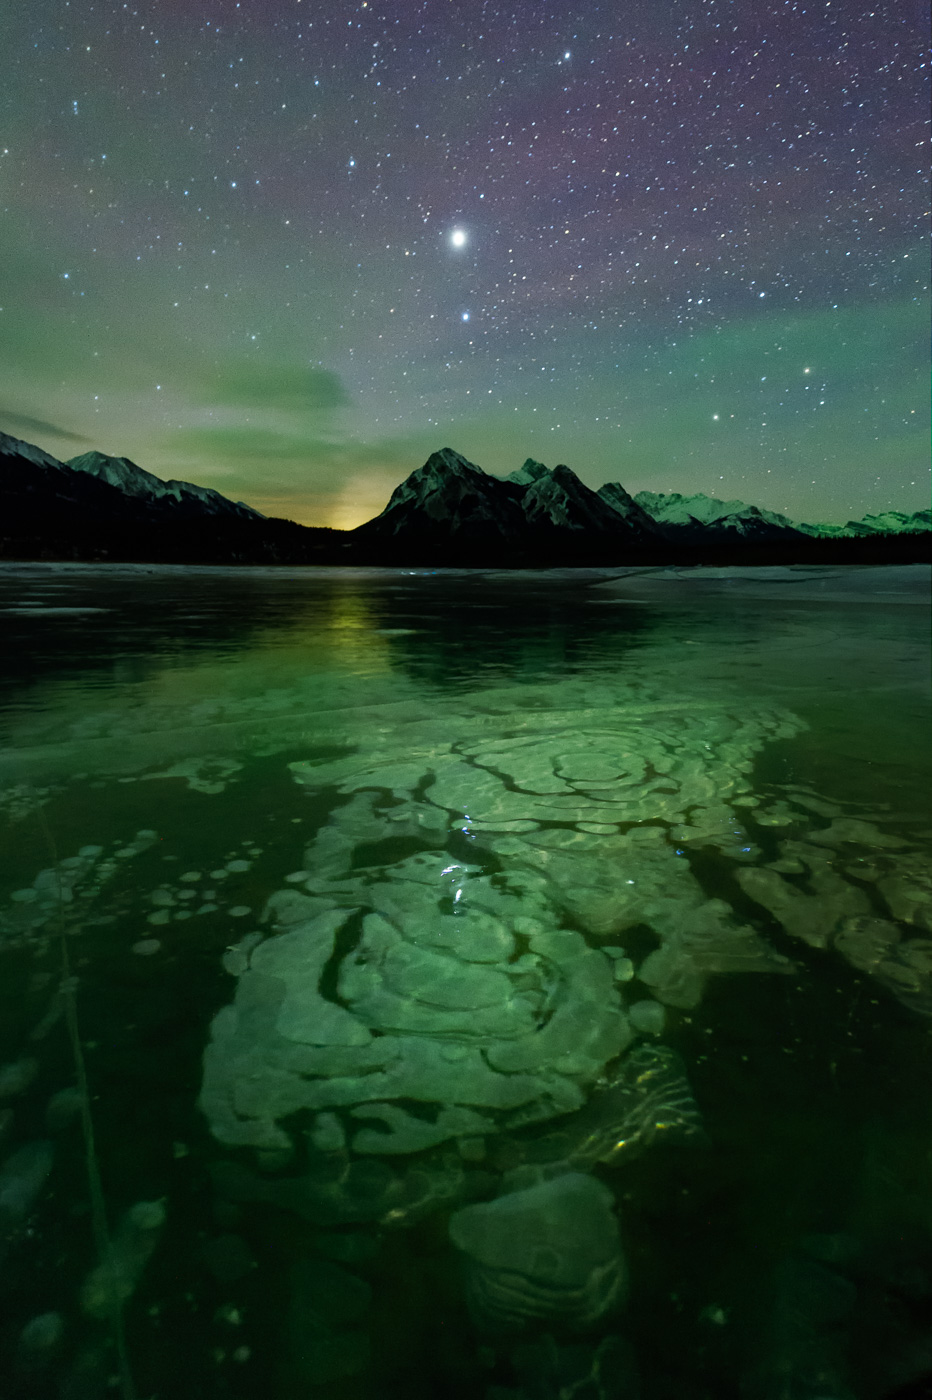 Methane bubbles trapped in ice lit up by Northern Lights at Abraham Lake with Venu above Ex Coulis